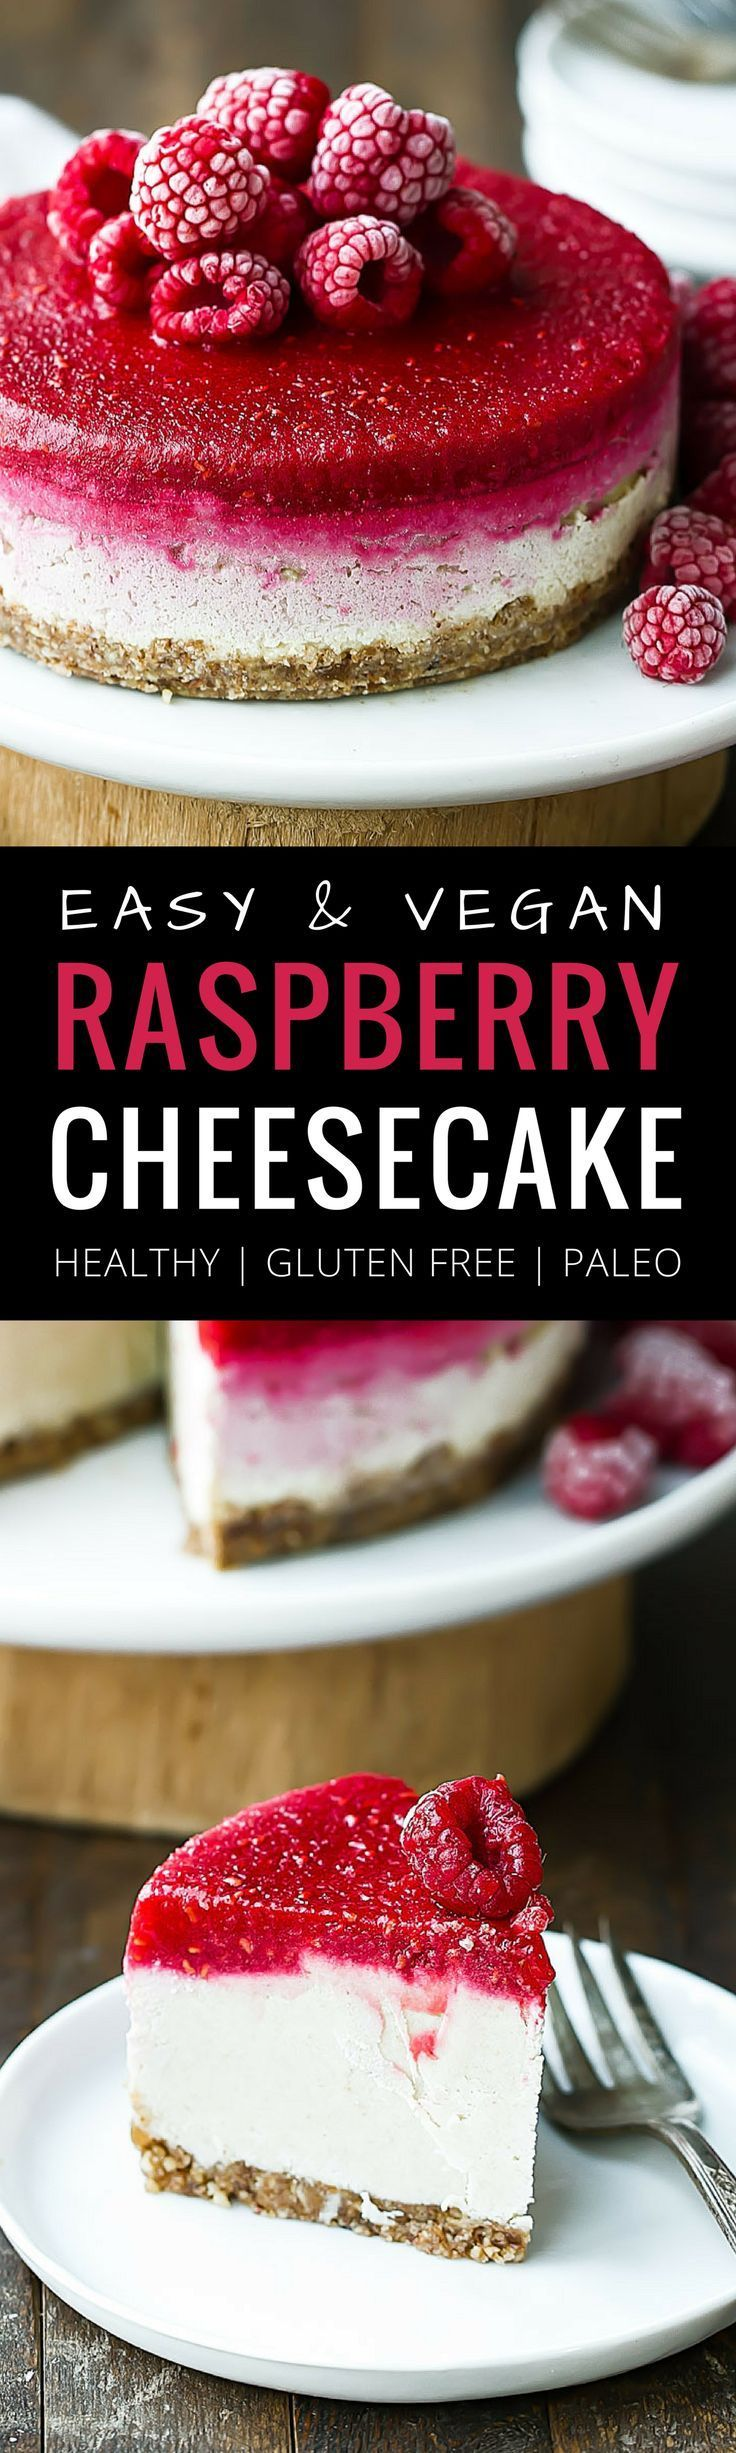 Easy Vegan Raspberry Cheesecake. Raw paleo cheesecake recipe. No bake cashew cheesecake. Best gluten free vegan cheesecake. Raw paleo cheesecake recipe.